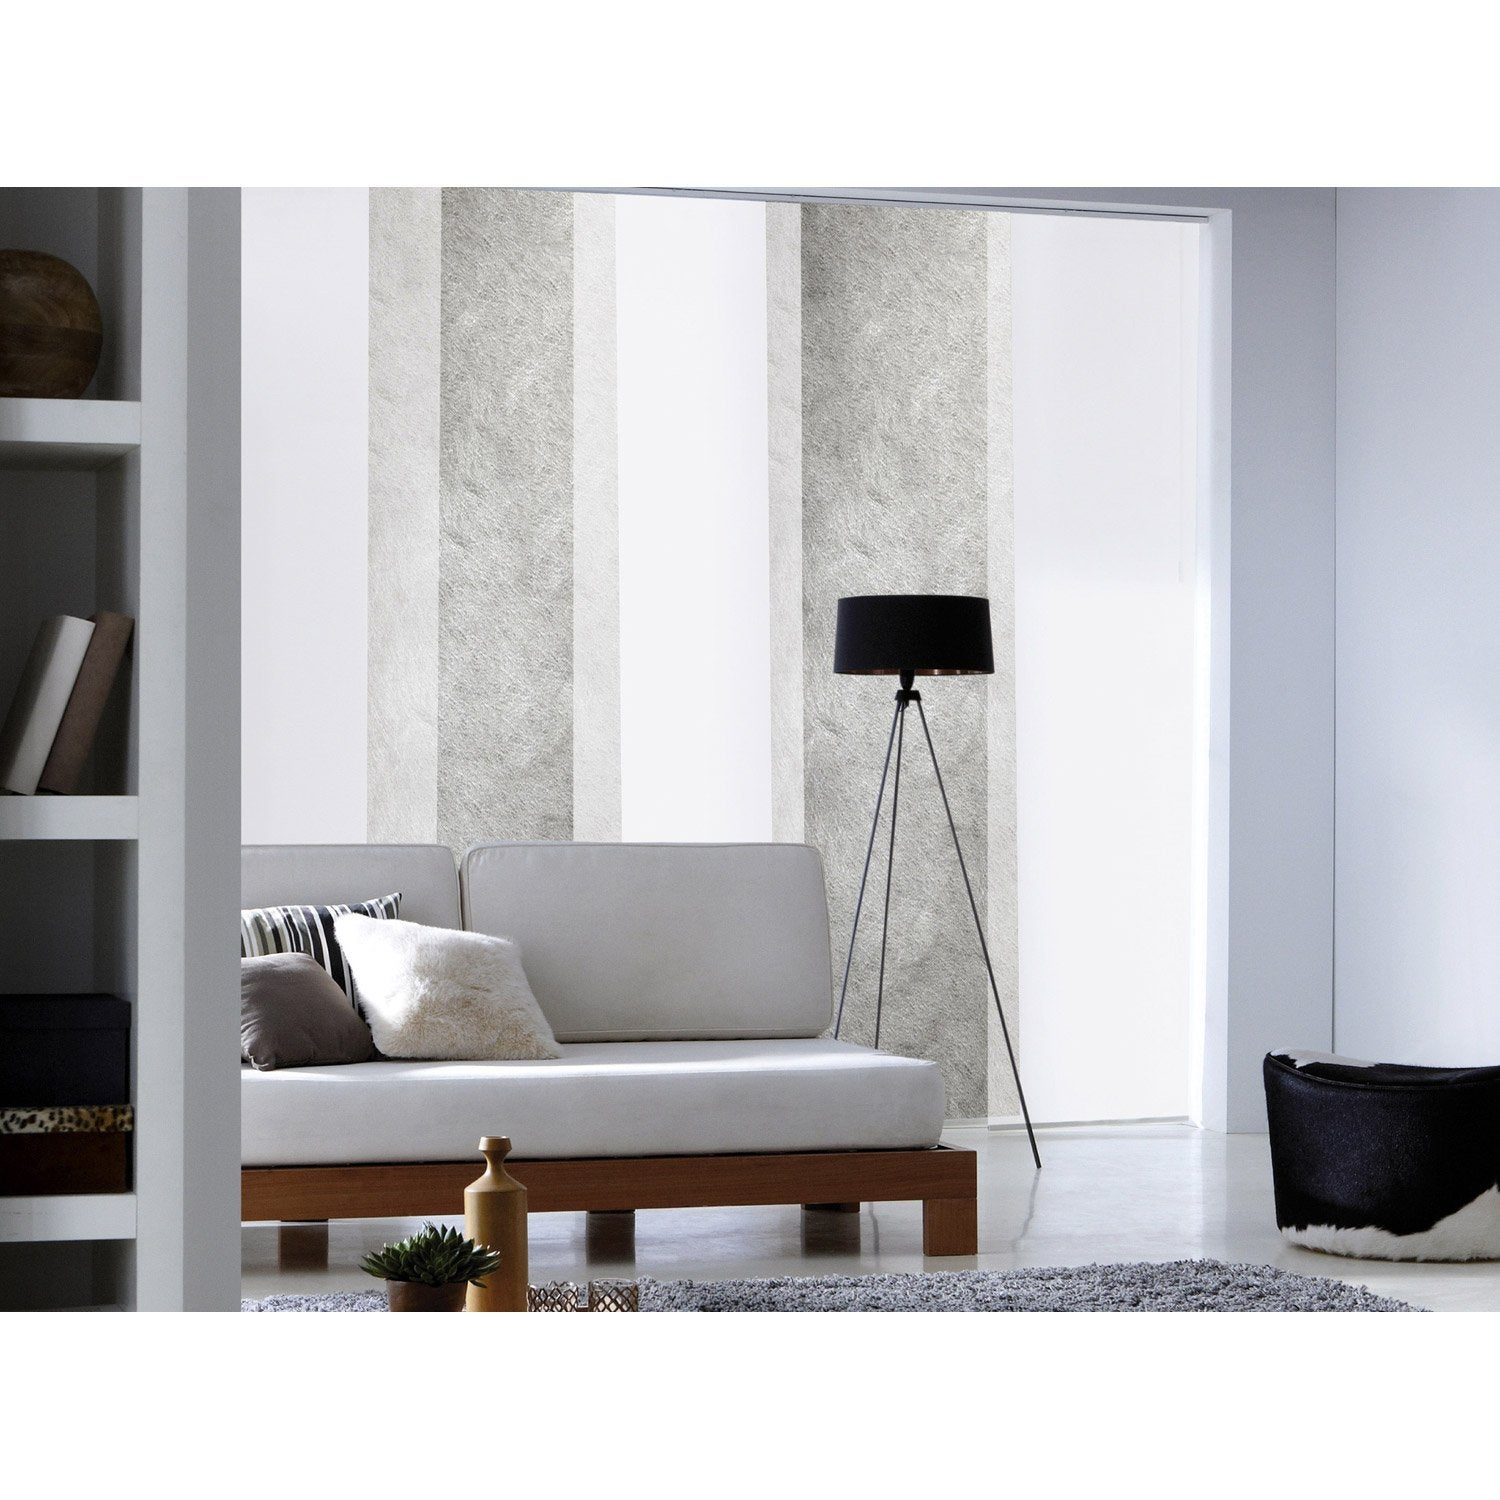 panneau japonais frost blanc x cm leroy merlin. Black Bedroom Furniture Sets. Home Design Ideas